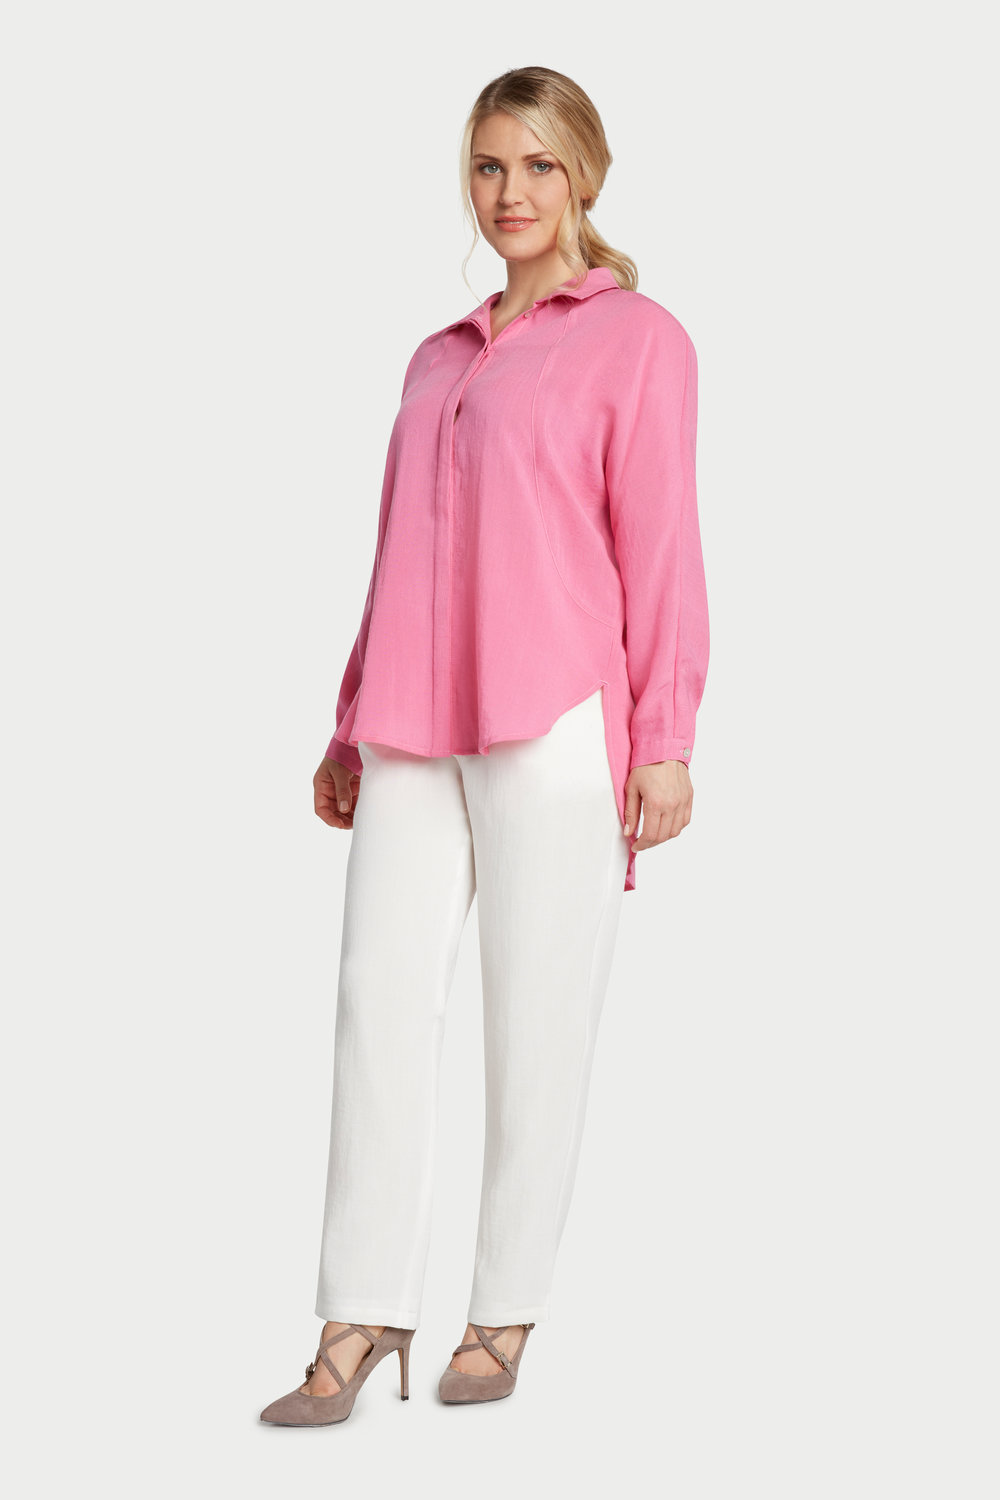 AA235 - Alice Dolman Shirt    Flamingo - CL4386